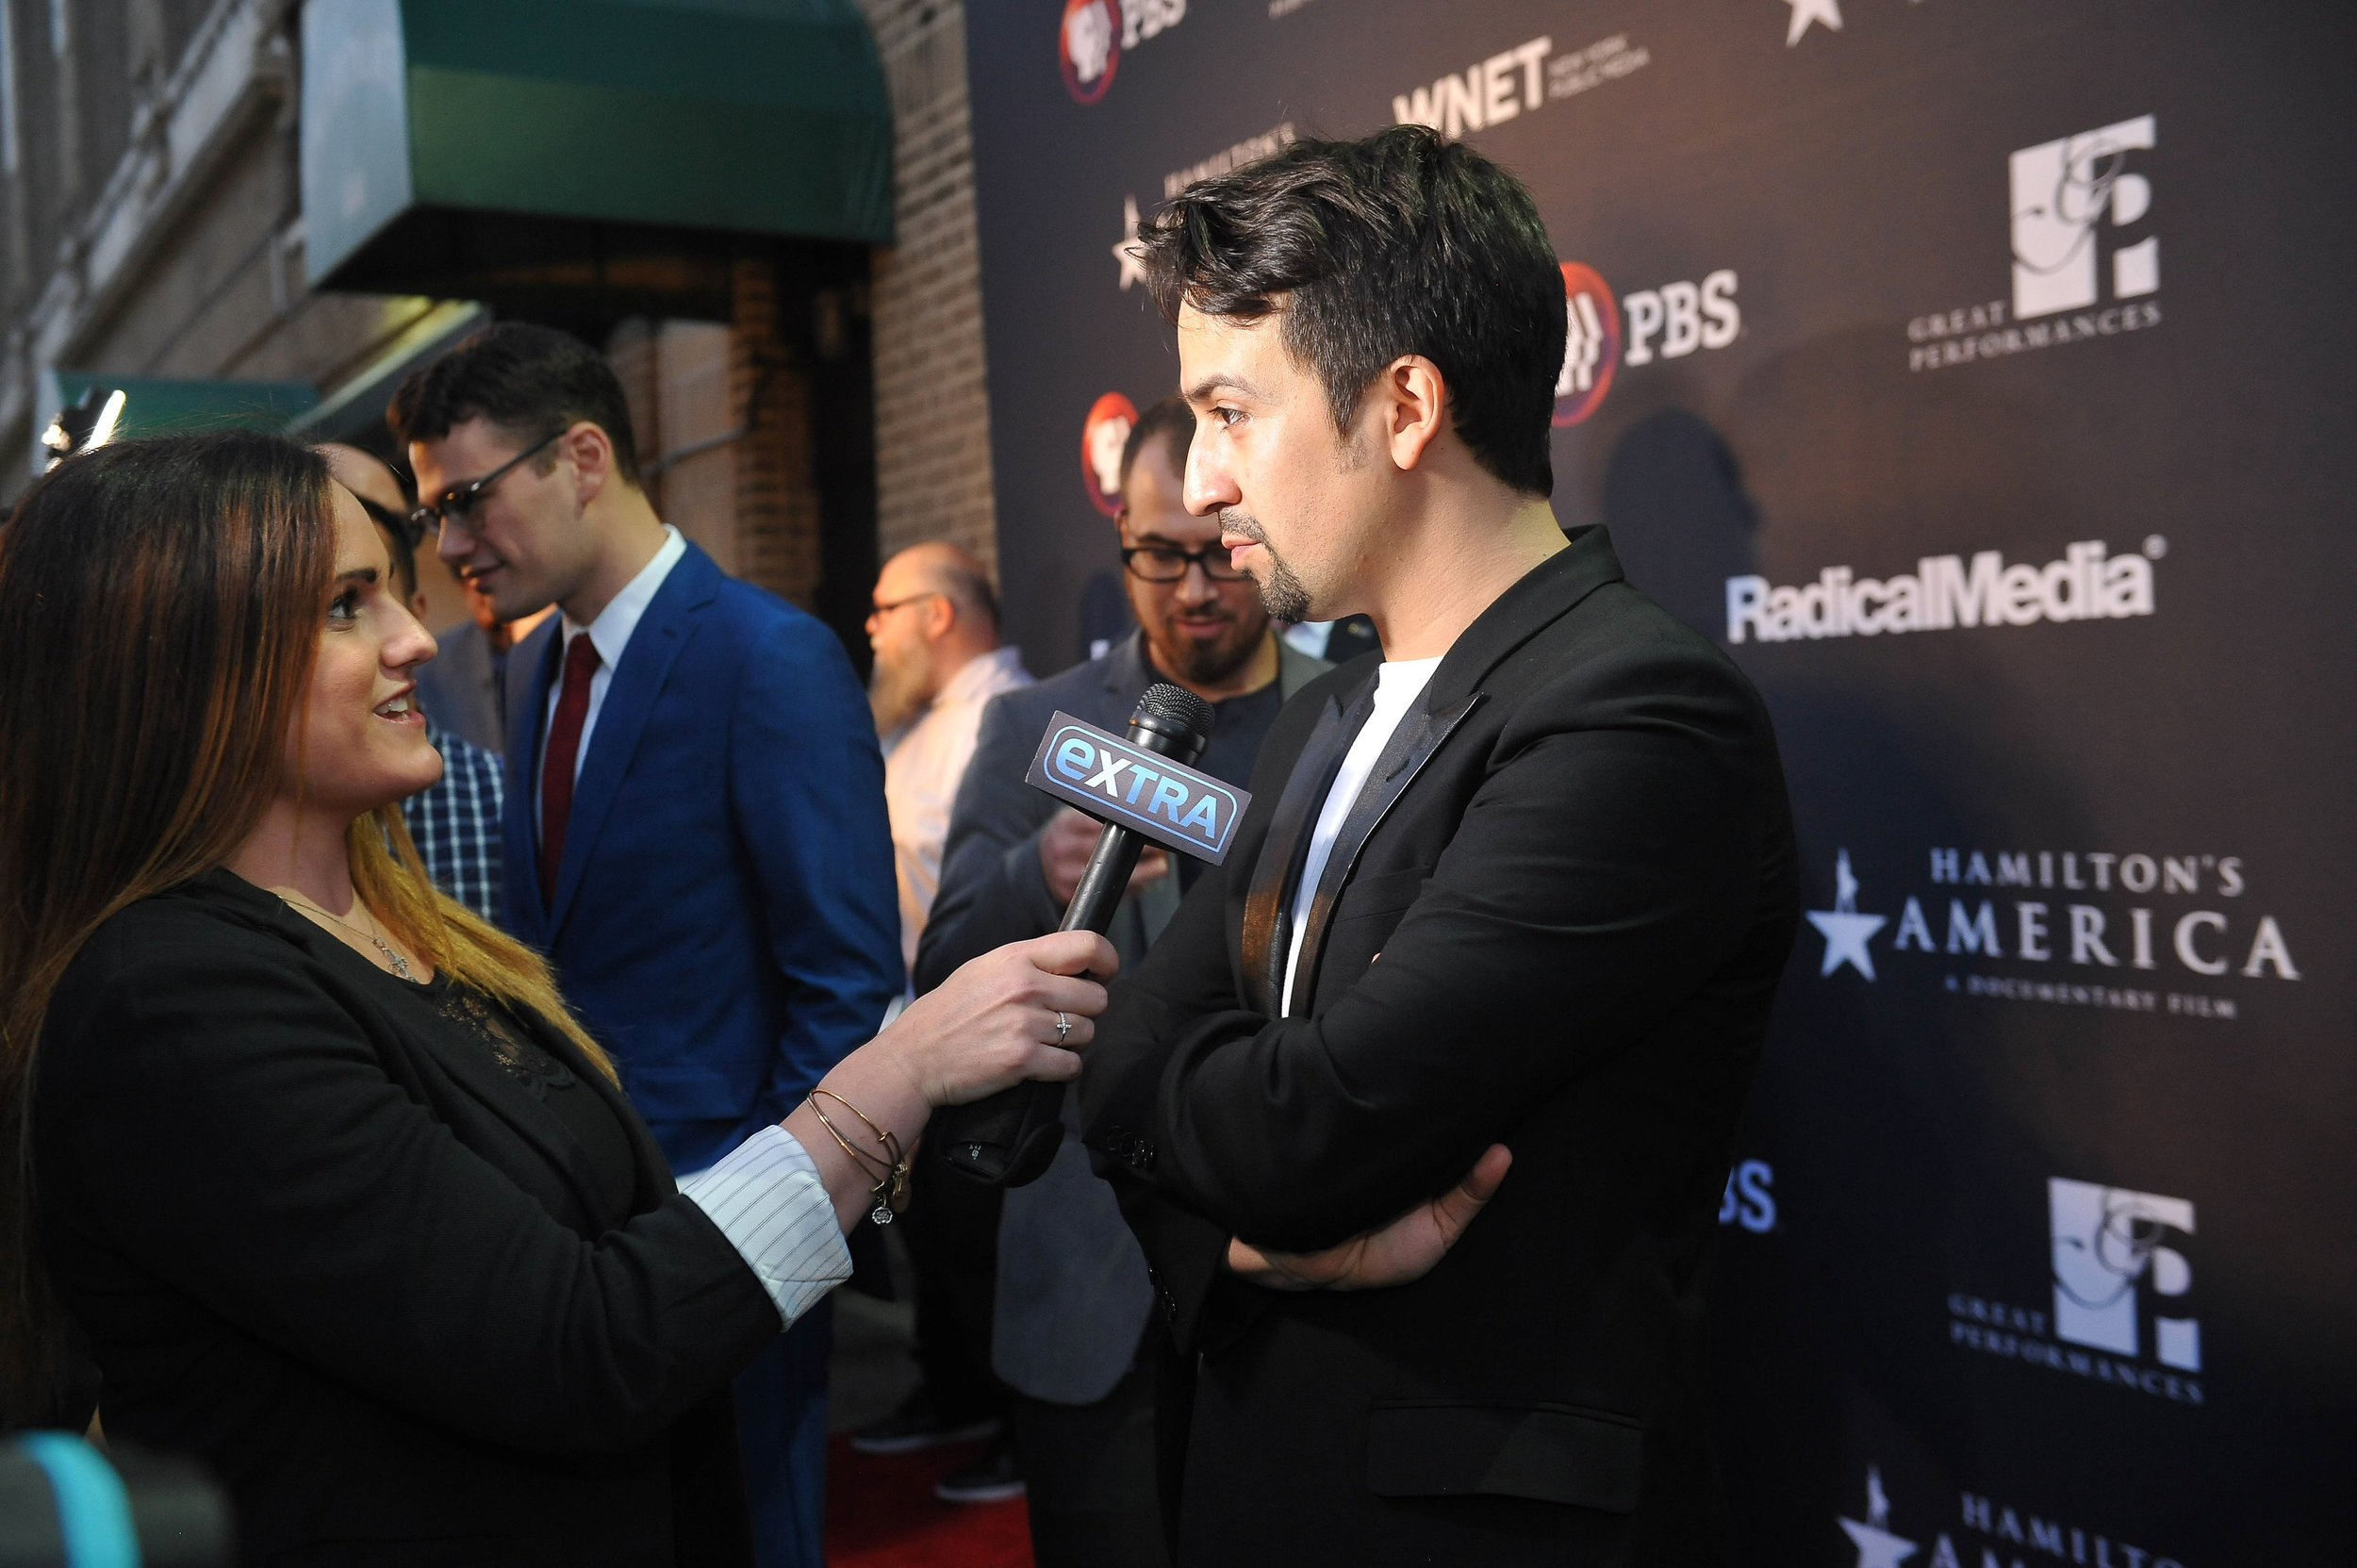 """Lin-Manuel Miranda interviewing with Extra on the red carpet at the official screening of """"Hamilton's America"""" at the Union Palace Theatre in Washington Heights.  ©Stephanie Berger"""